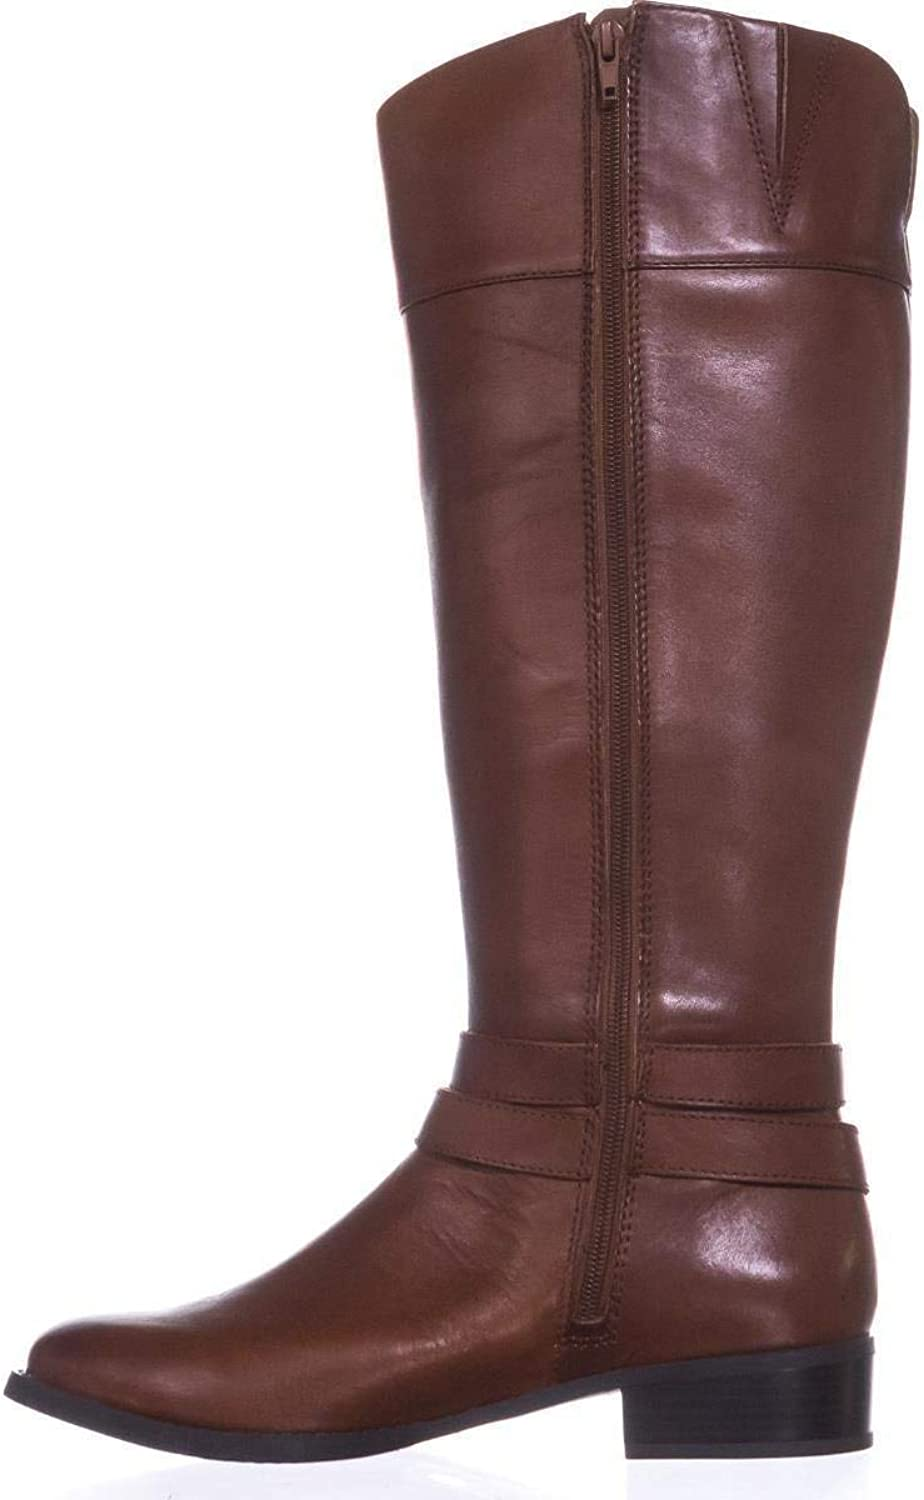 INC International Concepts I35 Frankii Buckle Riding Boots Cognac